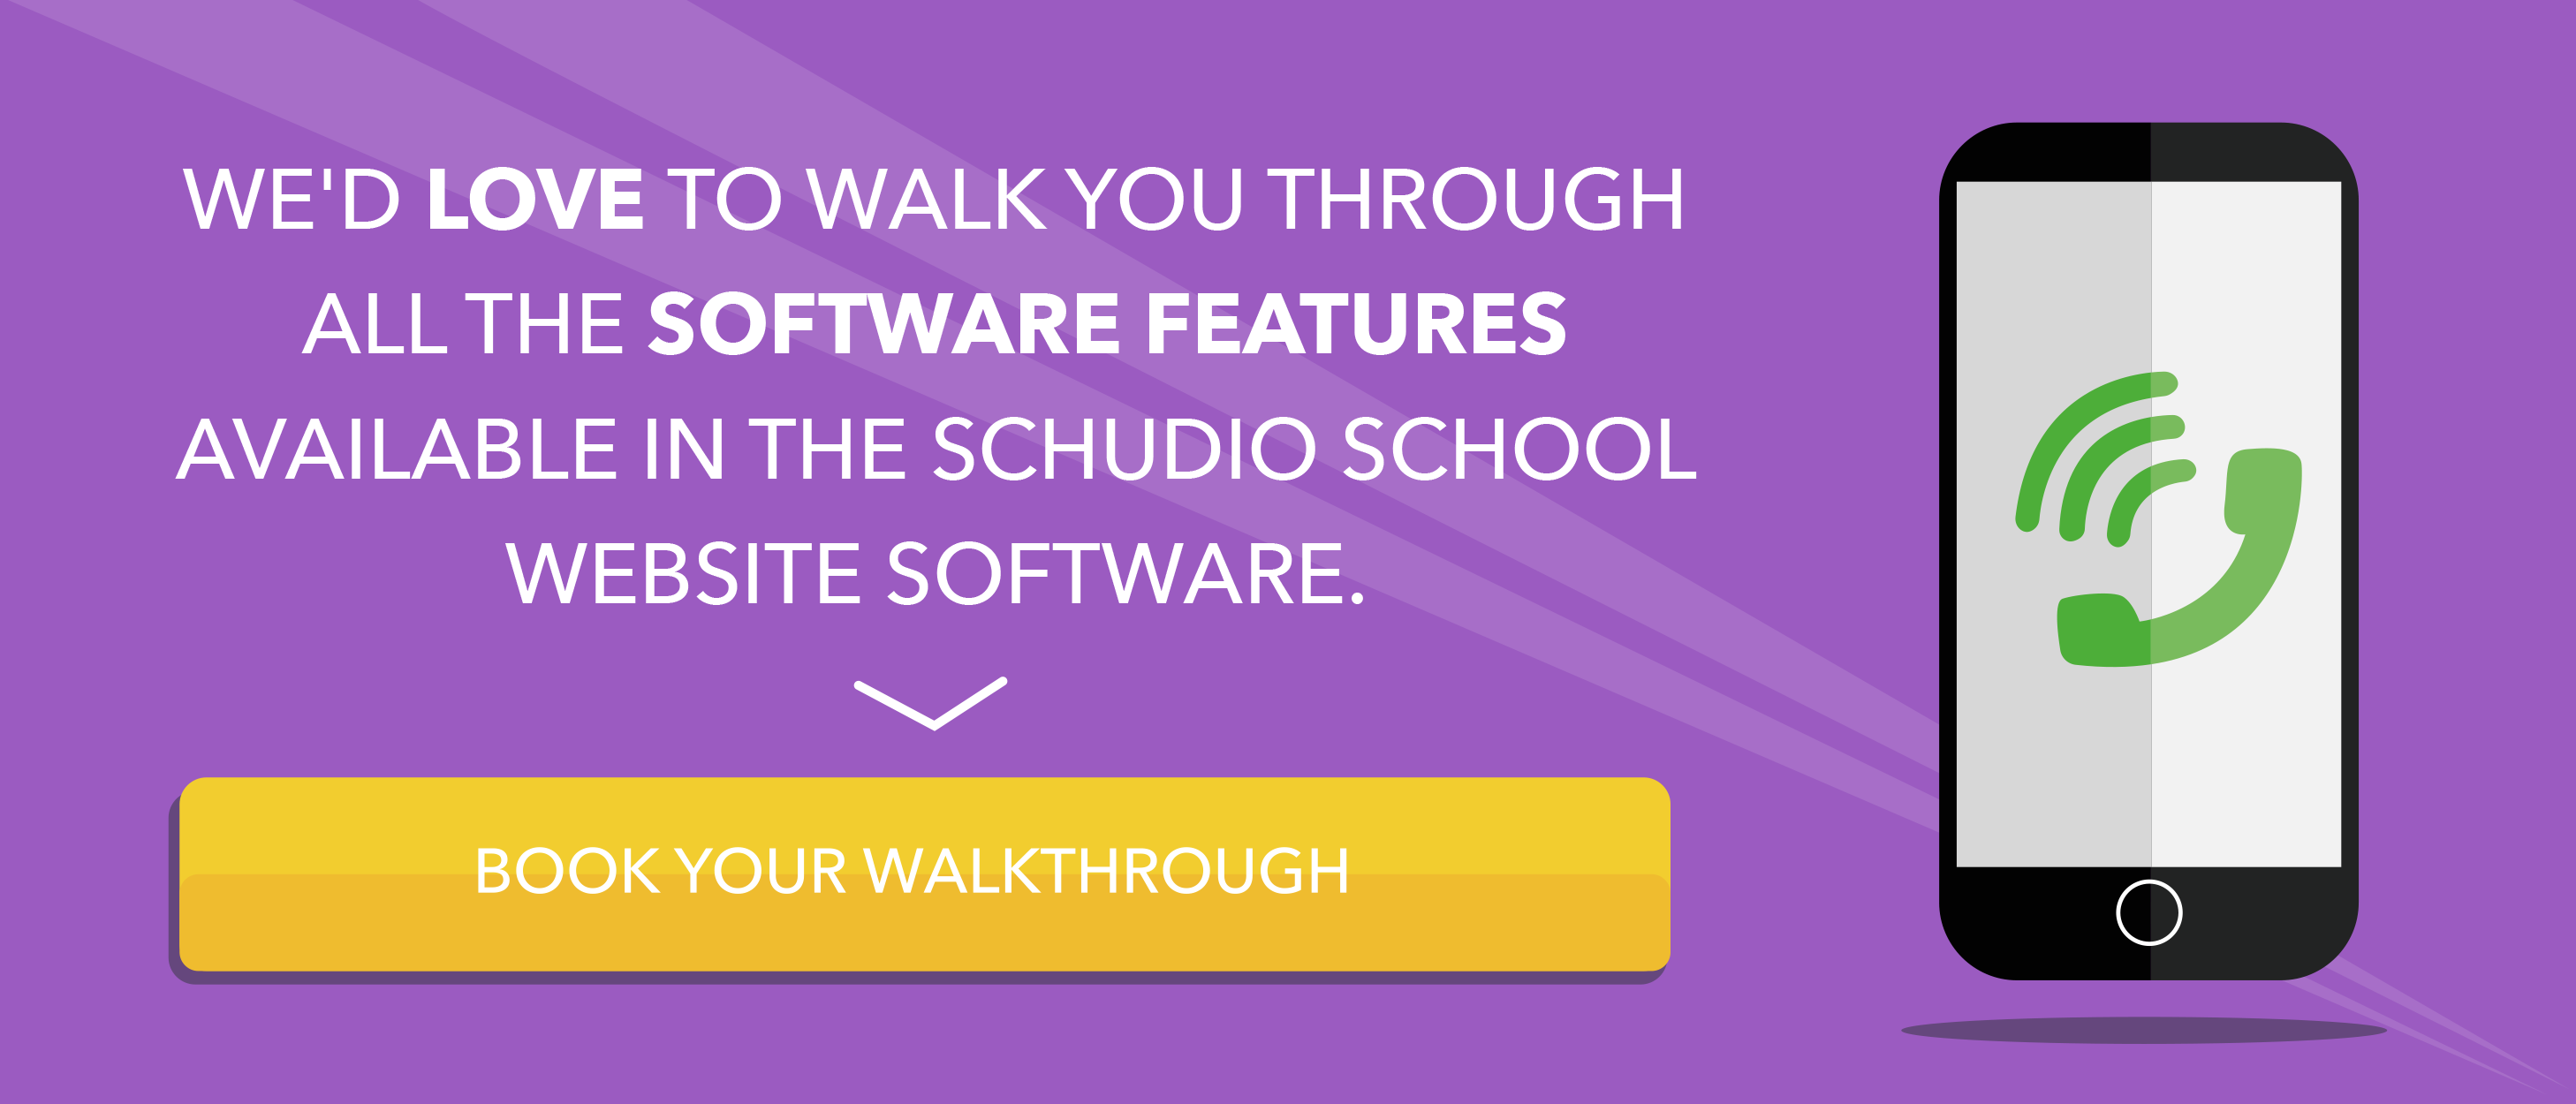 Book a school website walkthrough